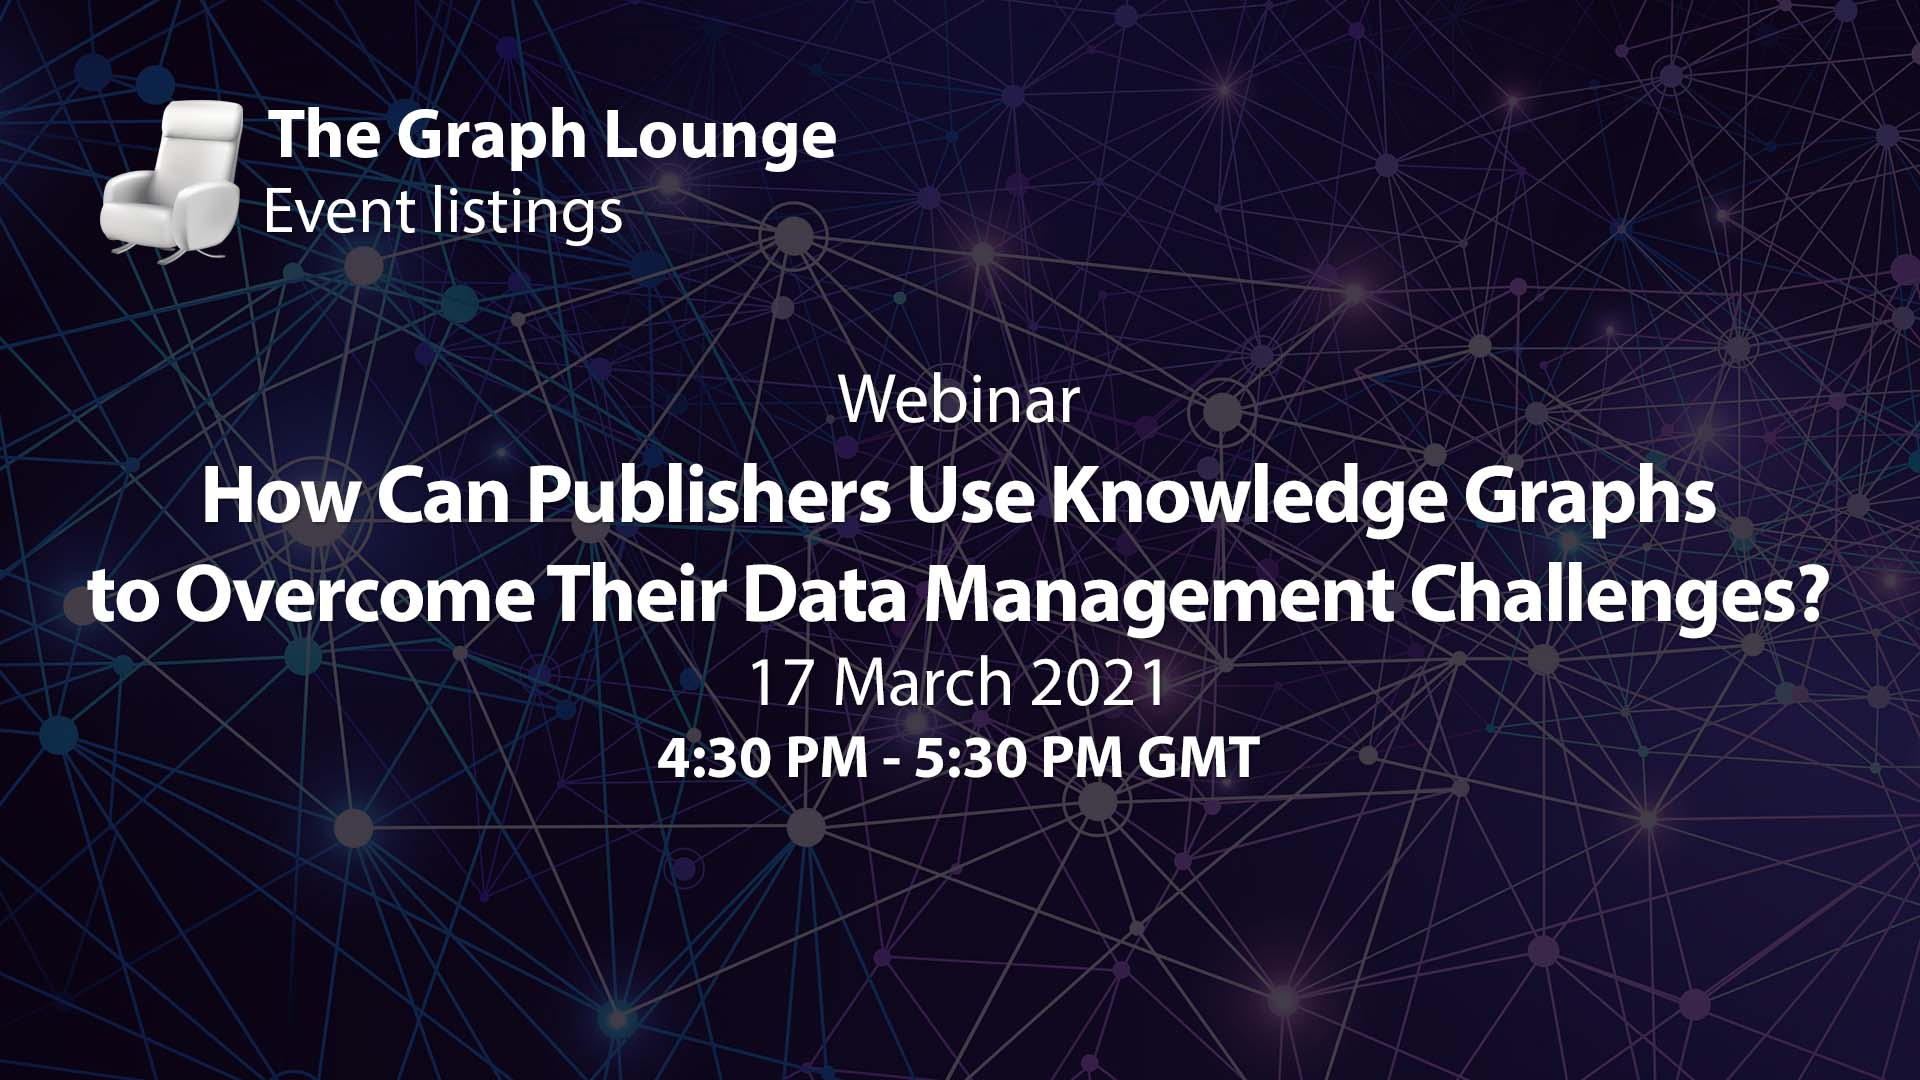 How Can Publishers Use Knowledge Graphs to Overcome Their Data Management Challenges?